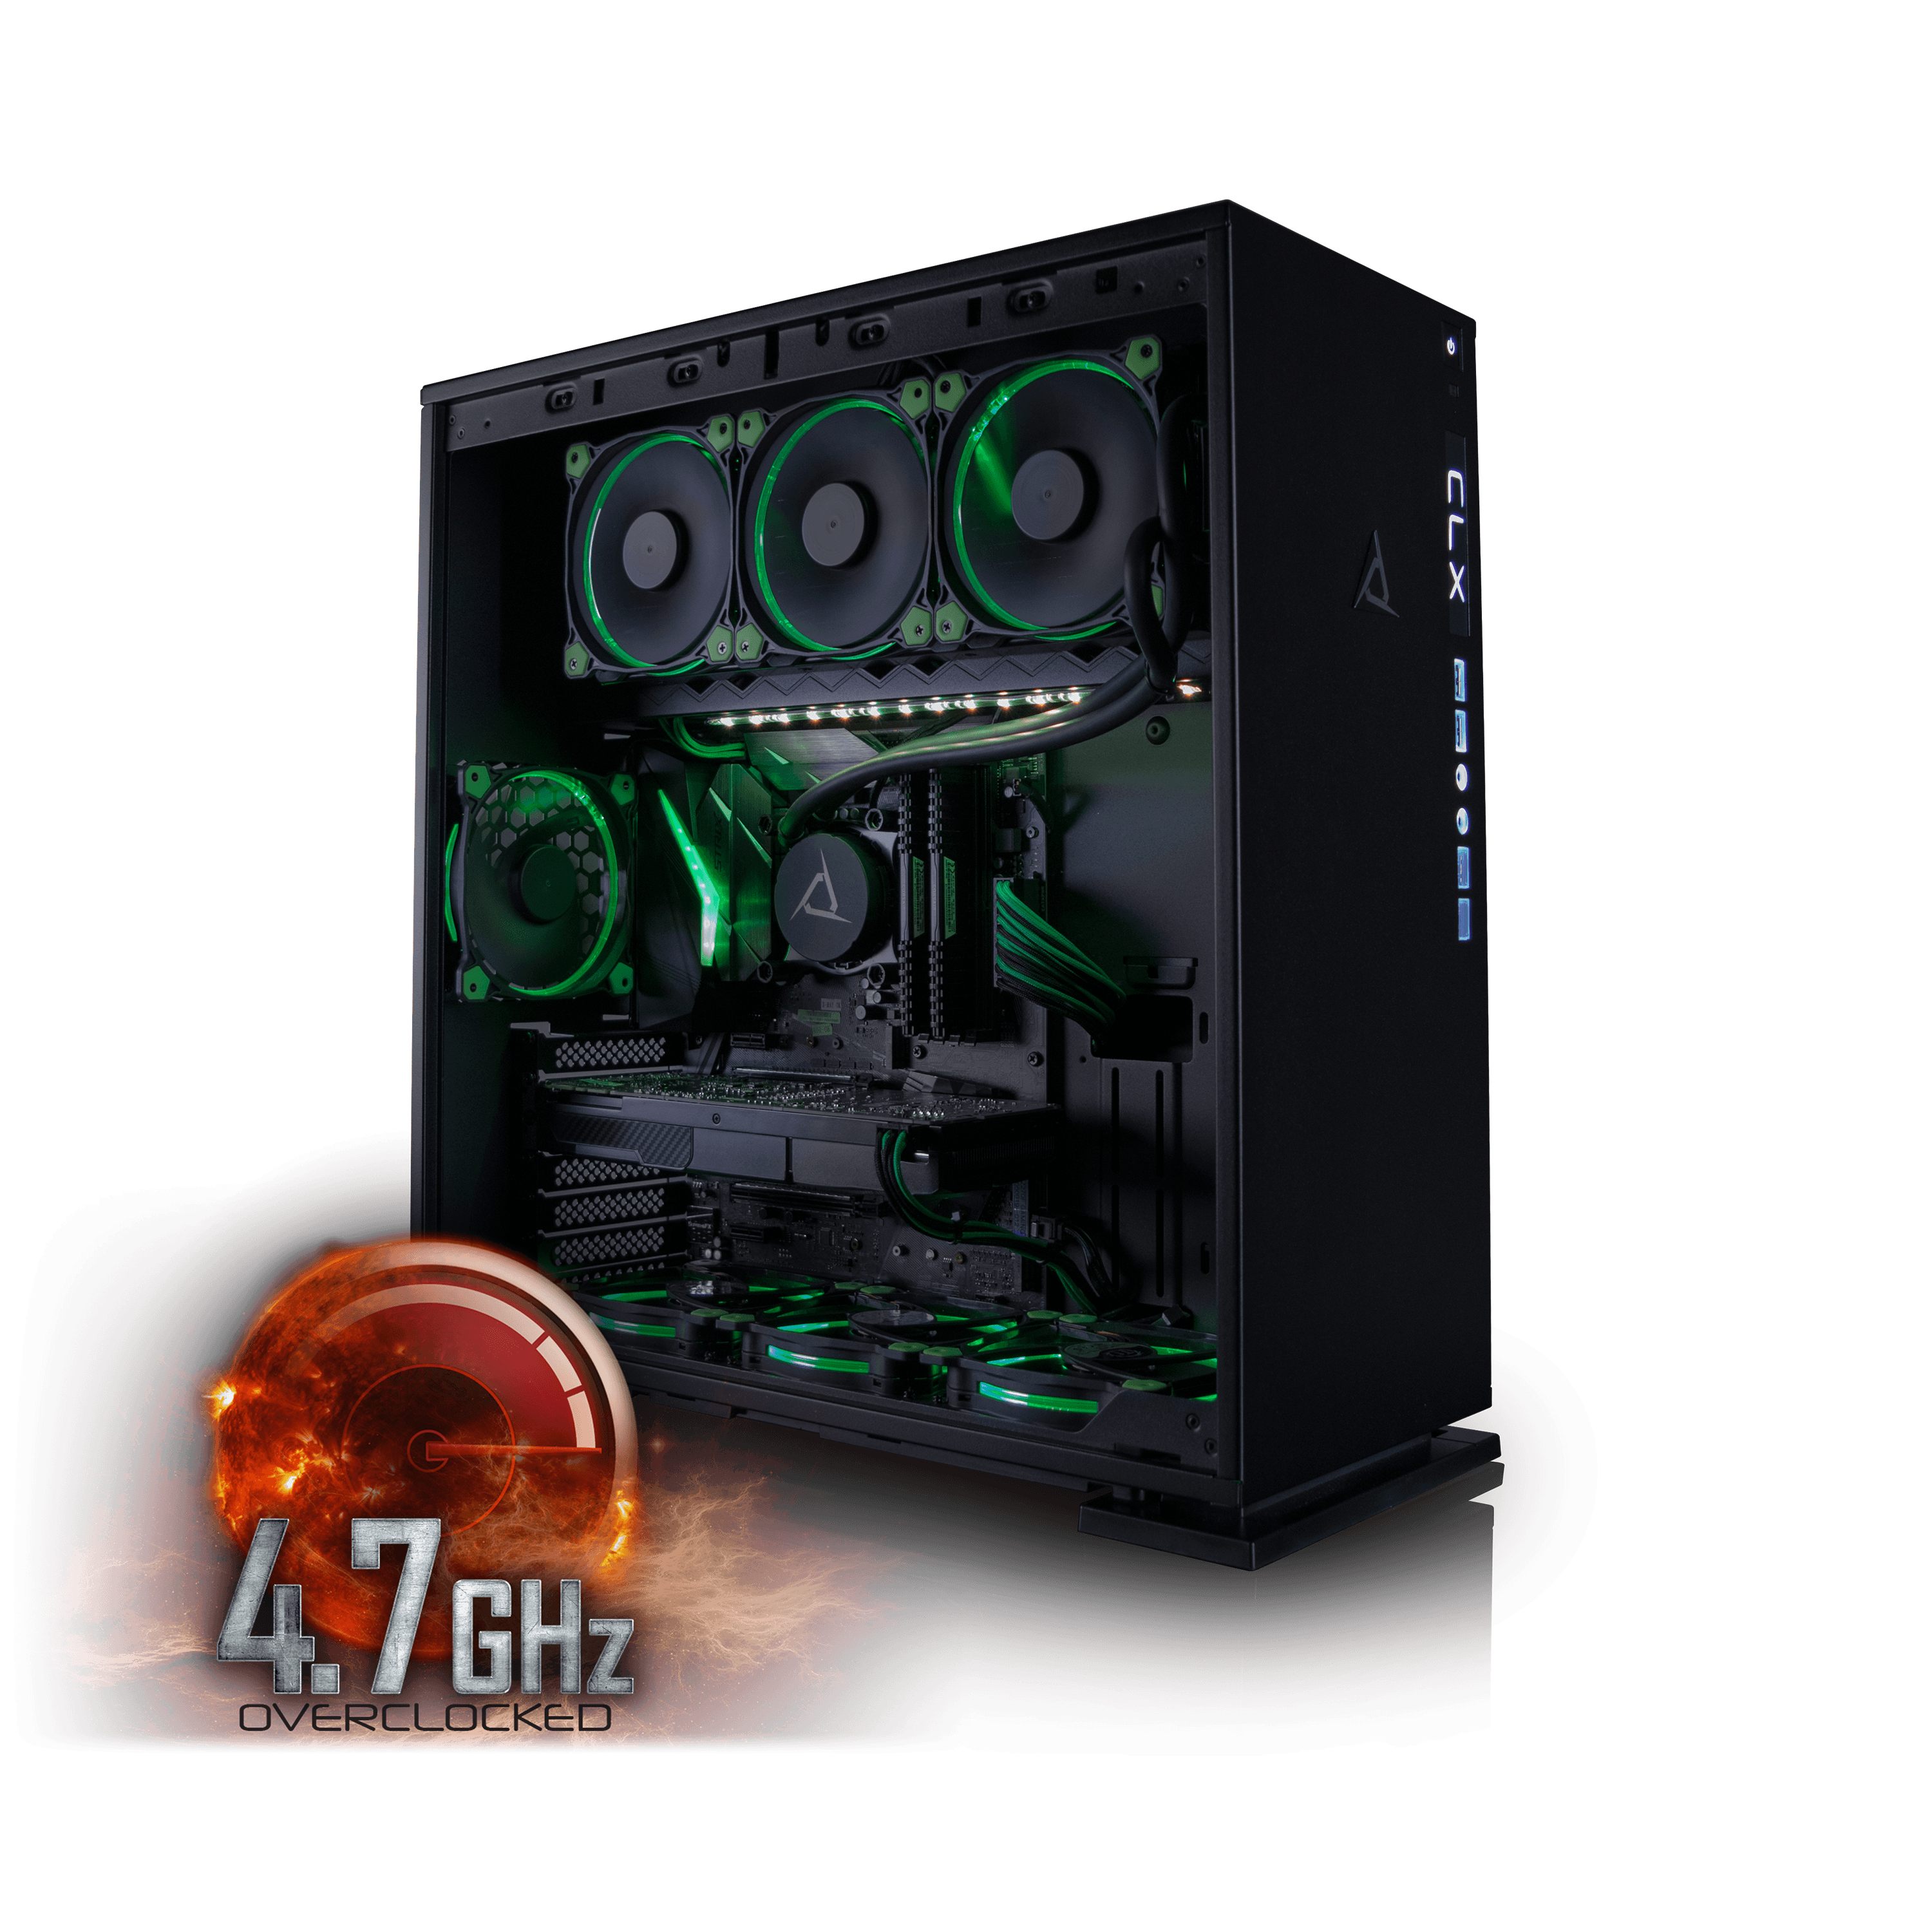 CybertronPC CLX Set High Performance Gaming PC Tripple-Liquid Cooled Z270 Asus Motherboard Intel i5 7600K 4.7GHz(OC)... by CybertronPC